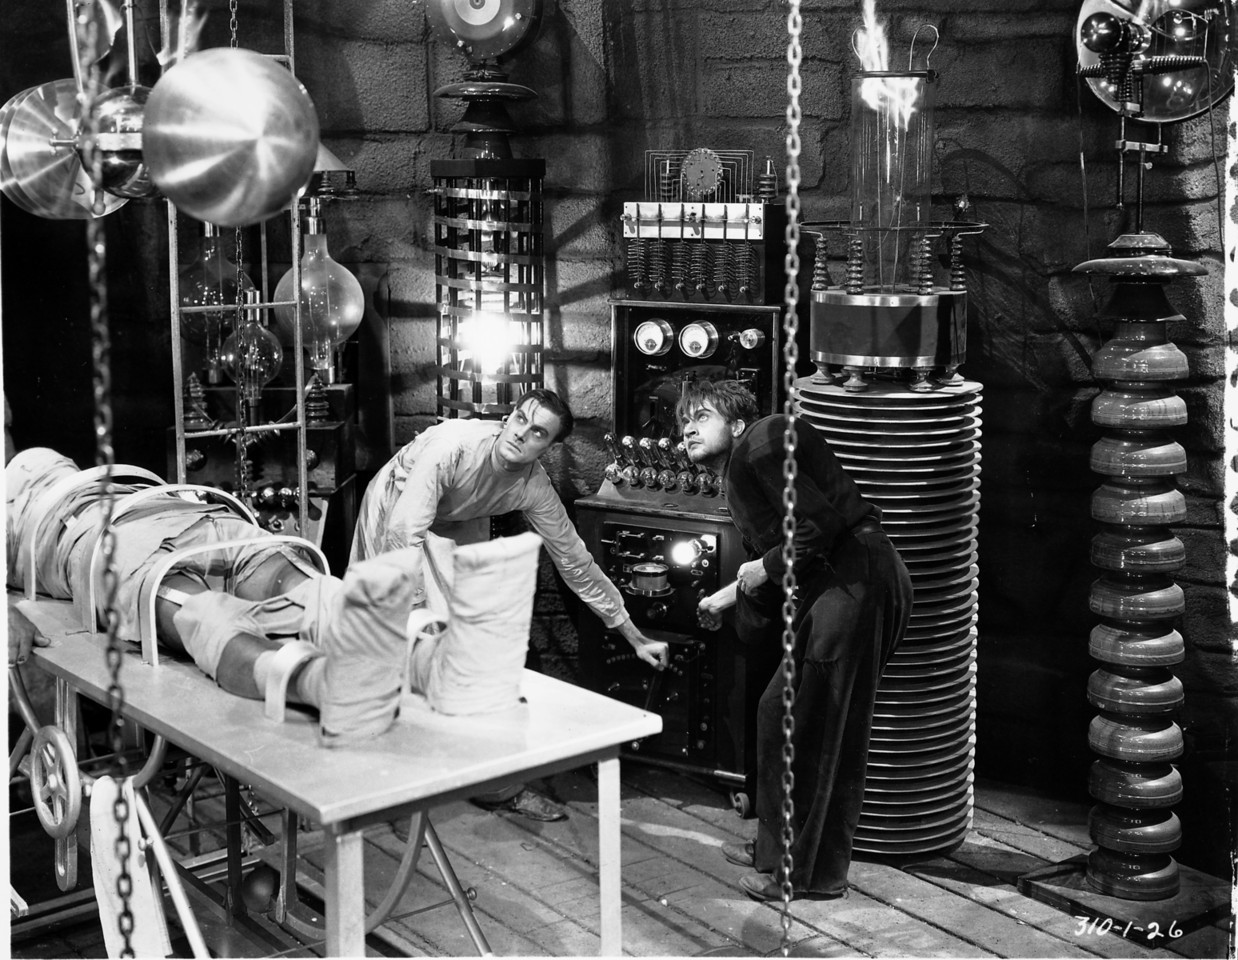 Frankenstein (Colin Clive) is in between his assistant Fritz and his Monster. Notice how both Frankenstein and the Monster brightly stick out in the picture. (Photo Credit: IMDB)